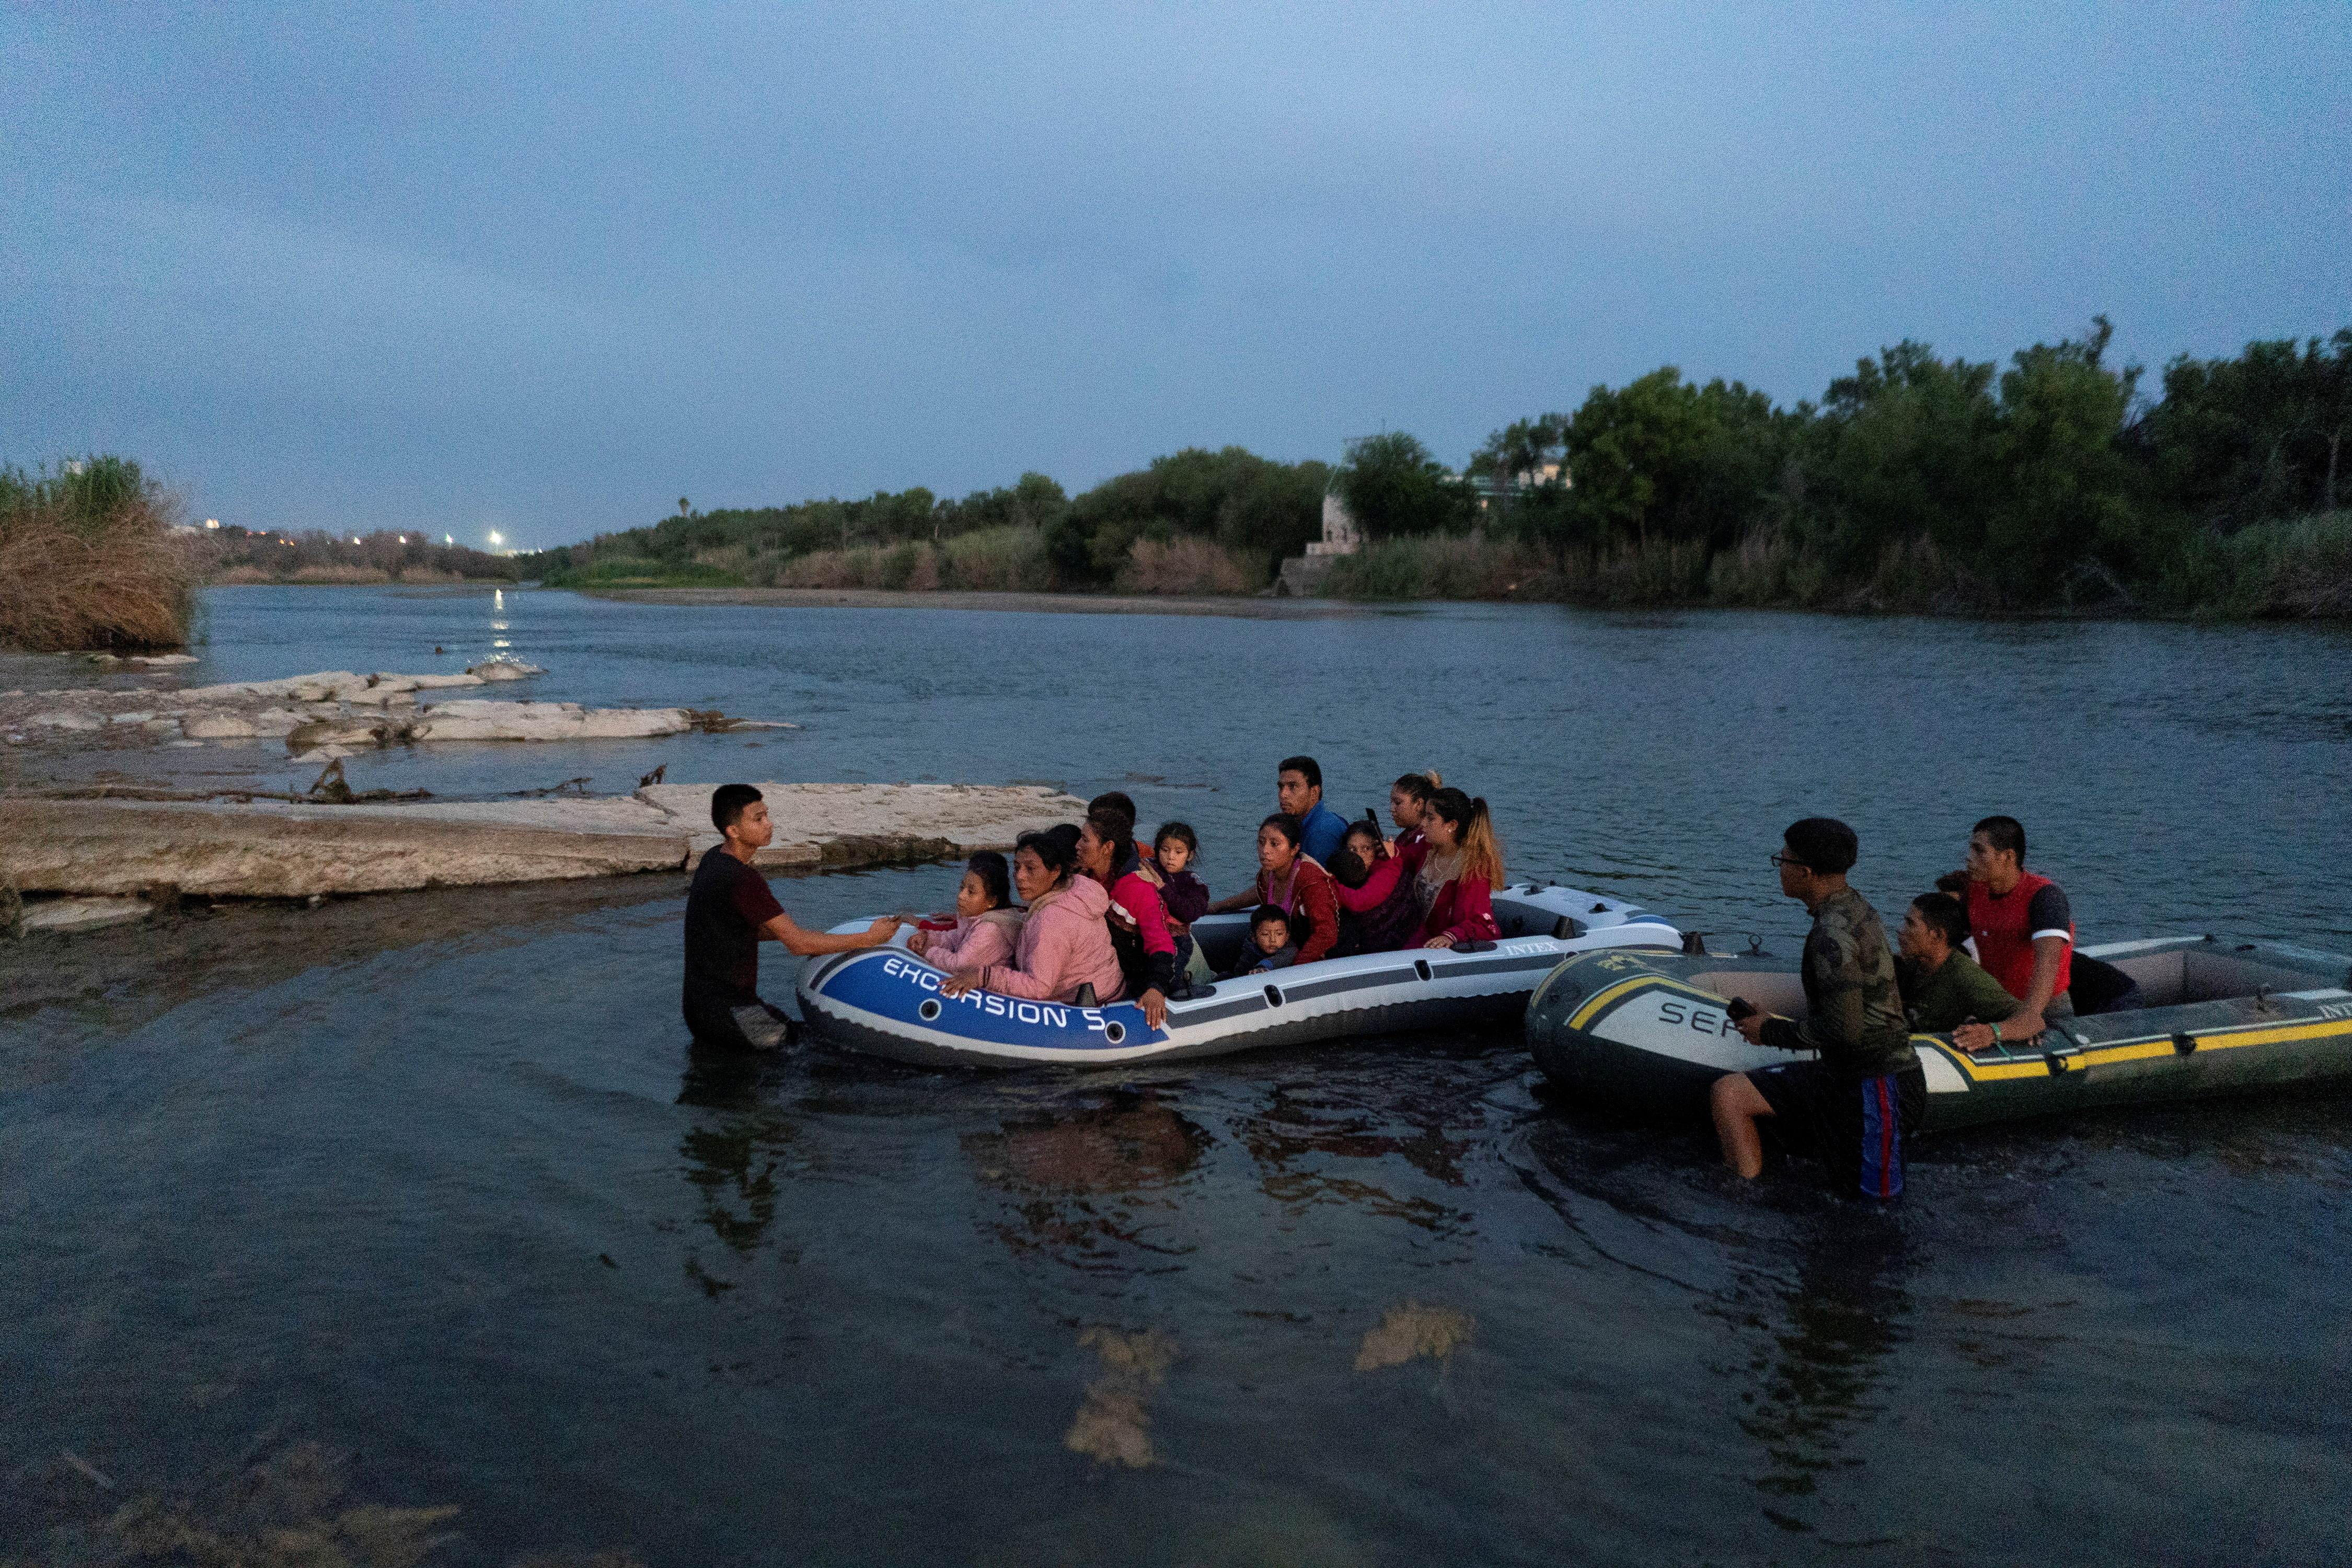 Asylum-seeking migrant families from Guatemala and Honduras arrive to the U.S. side of the bank on an inflatable raft after crossing the Rio Grande river into the United States from Mexico in Roma, Texas, U.S., July 28, 2021. Picture taken July 28, 2021. REUTERS/Go Nakamura/File Photo